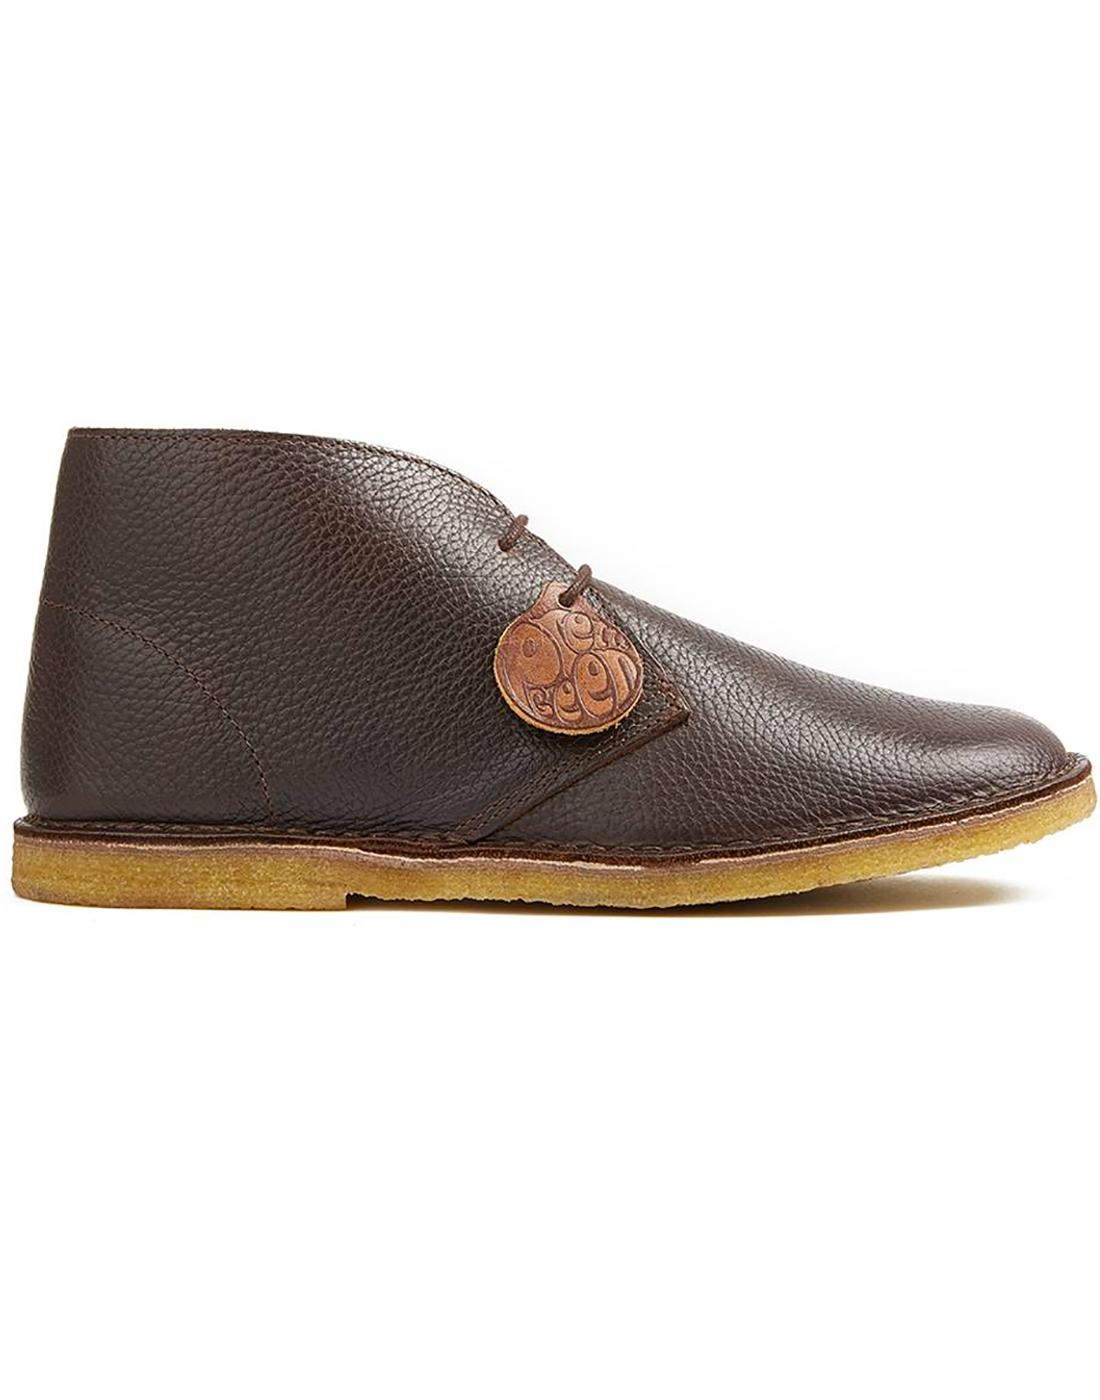 PRETTY GREEN Retro Mod Leather Desert Boots Brown